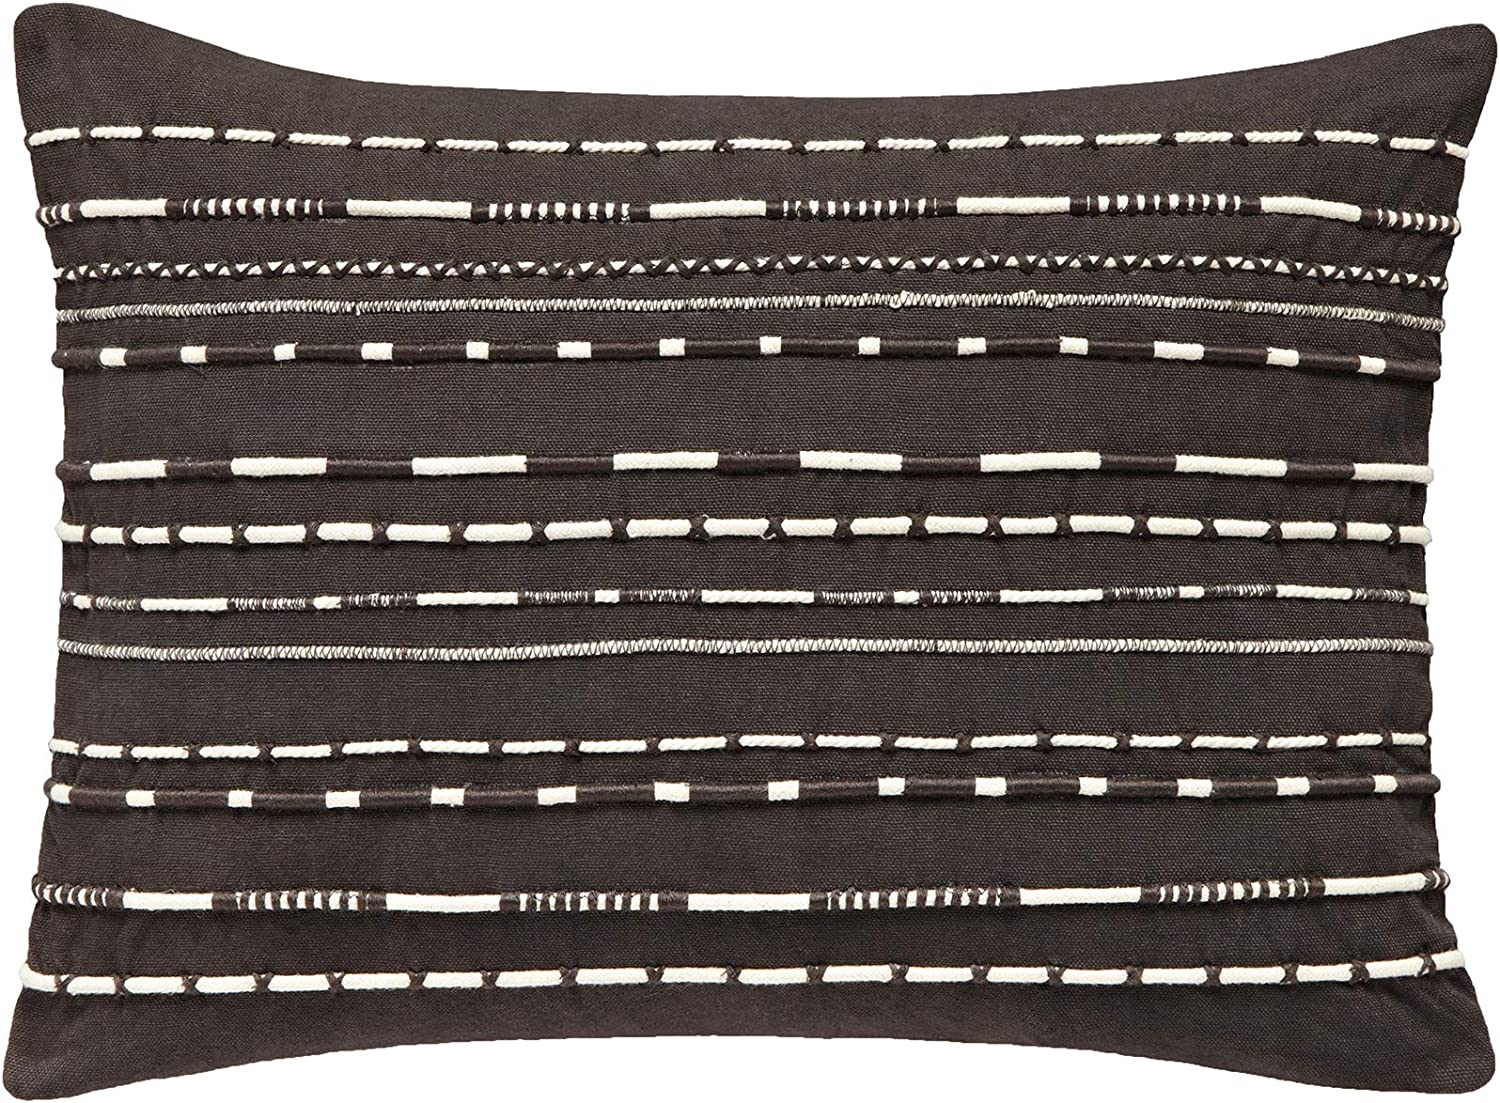 Splendid Home Applied Cord Decorative Pillow Throw Pillow, 21x16, Charcoal